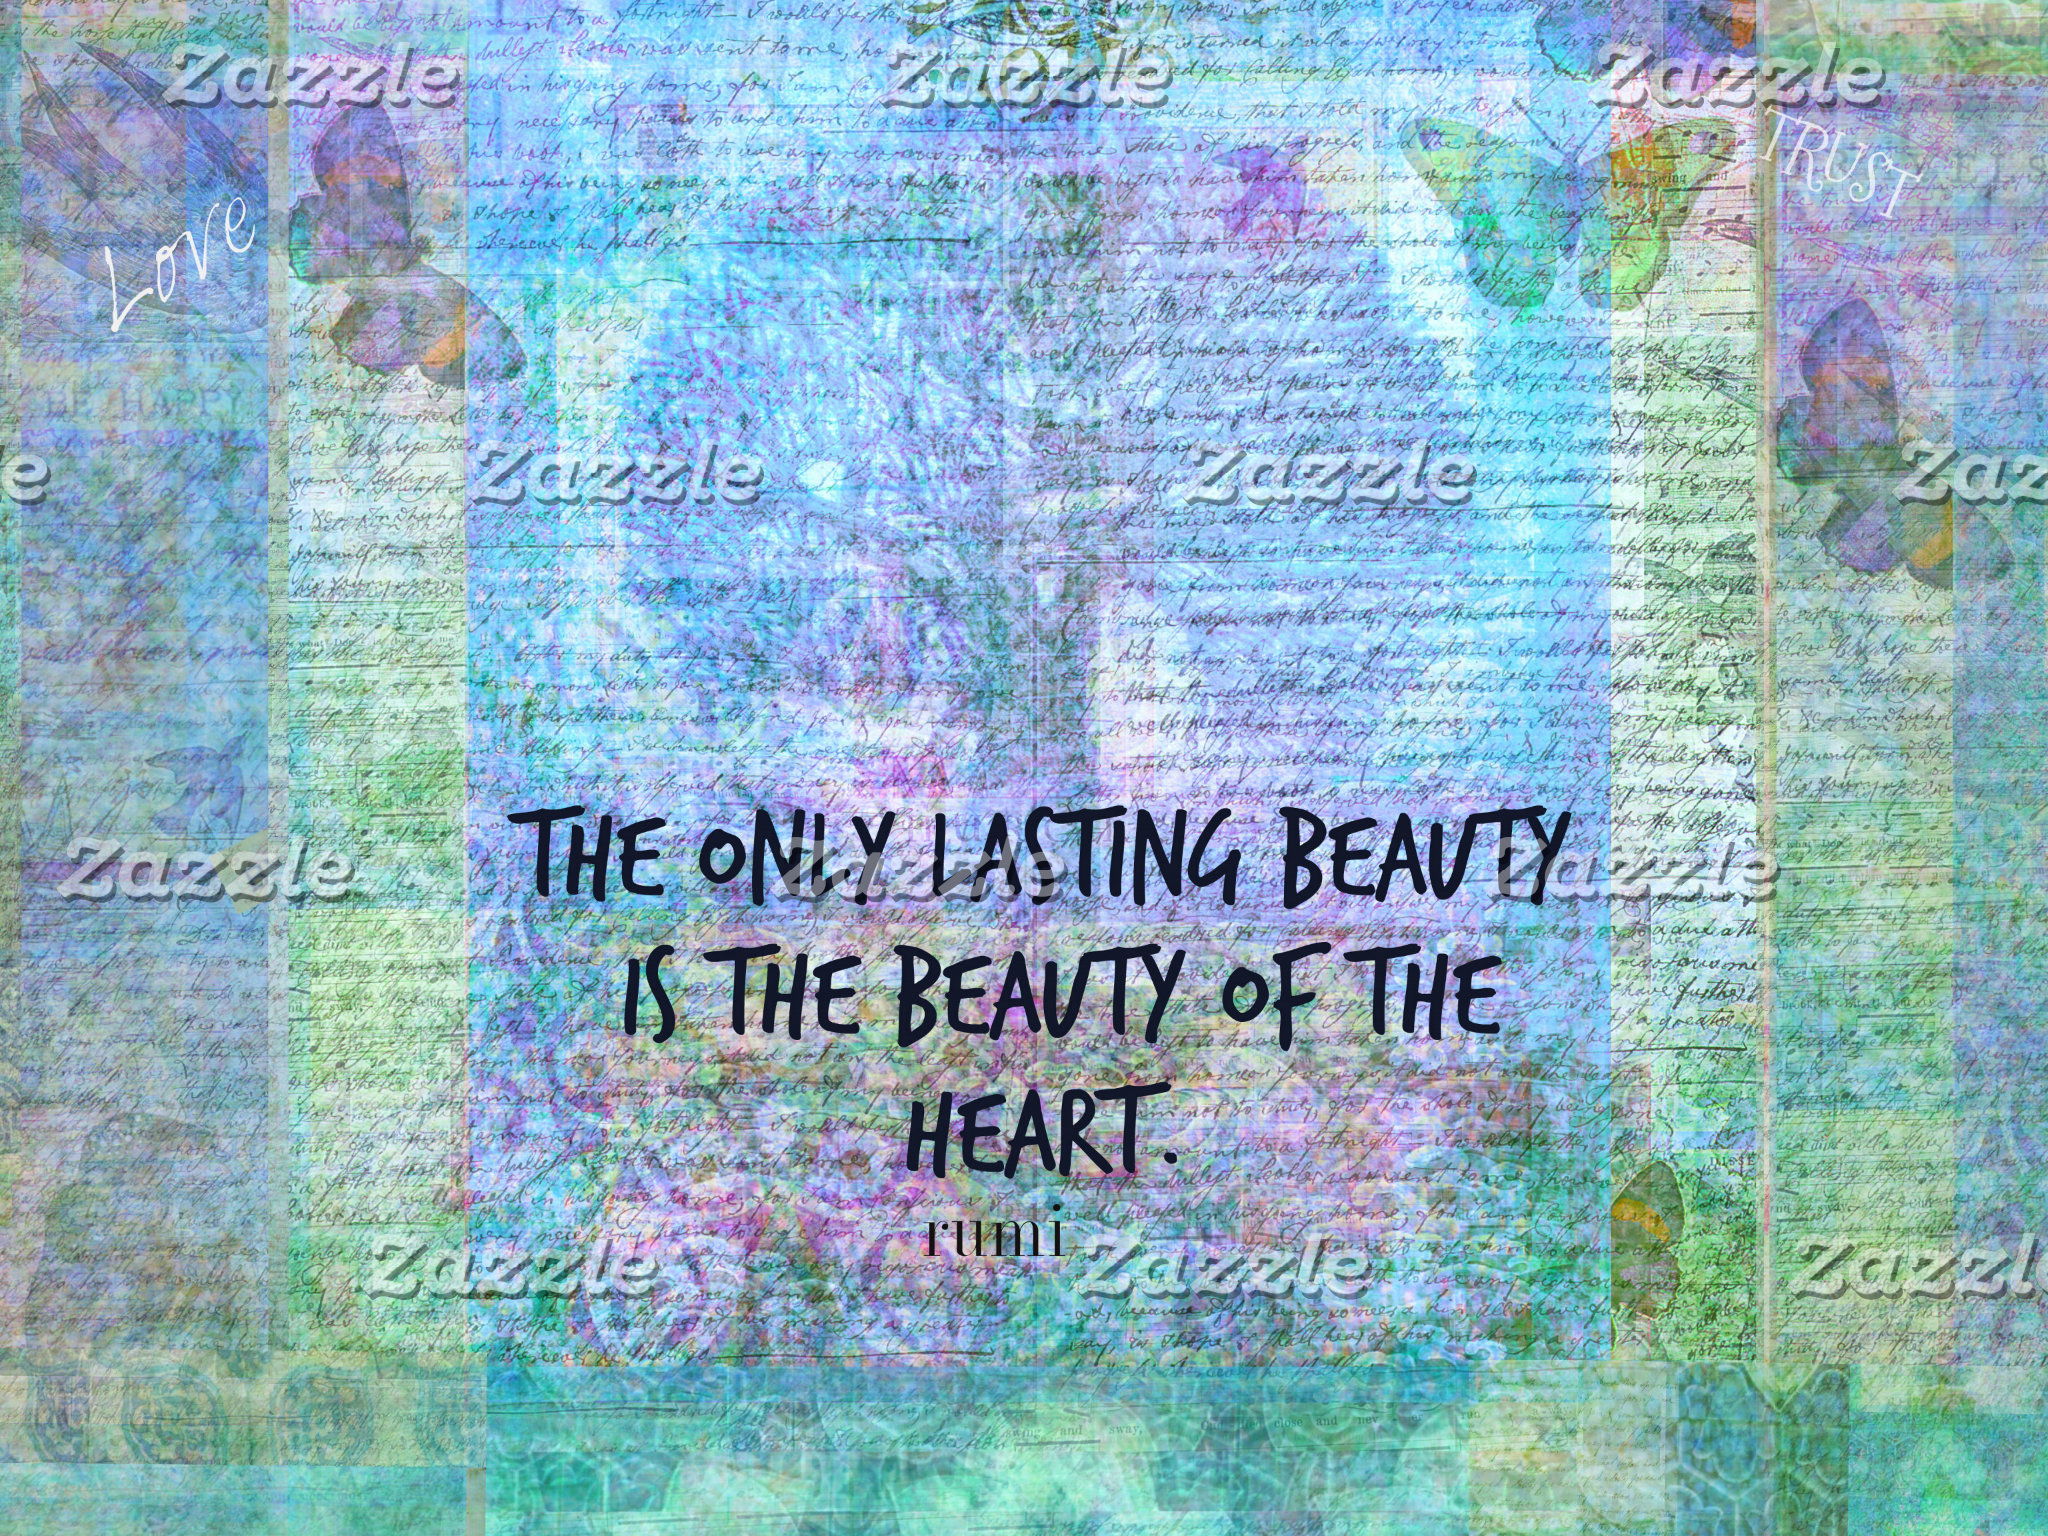 The only lasting beauty is the beauty of the heart